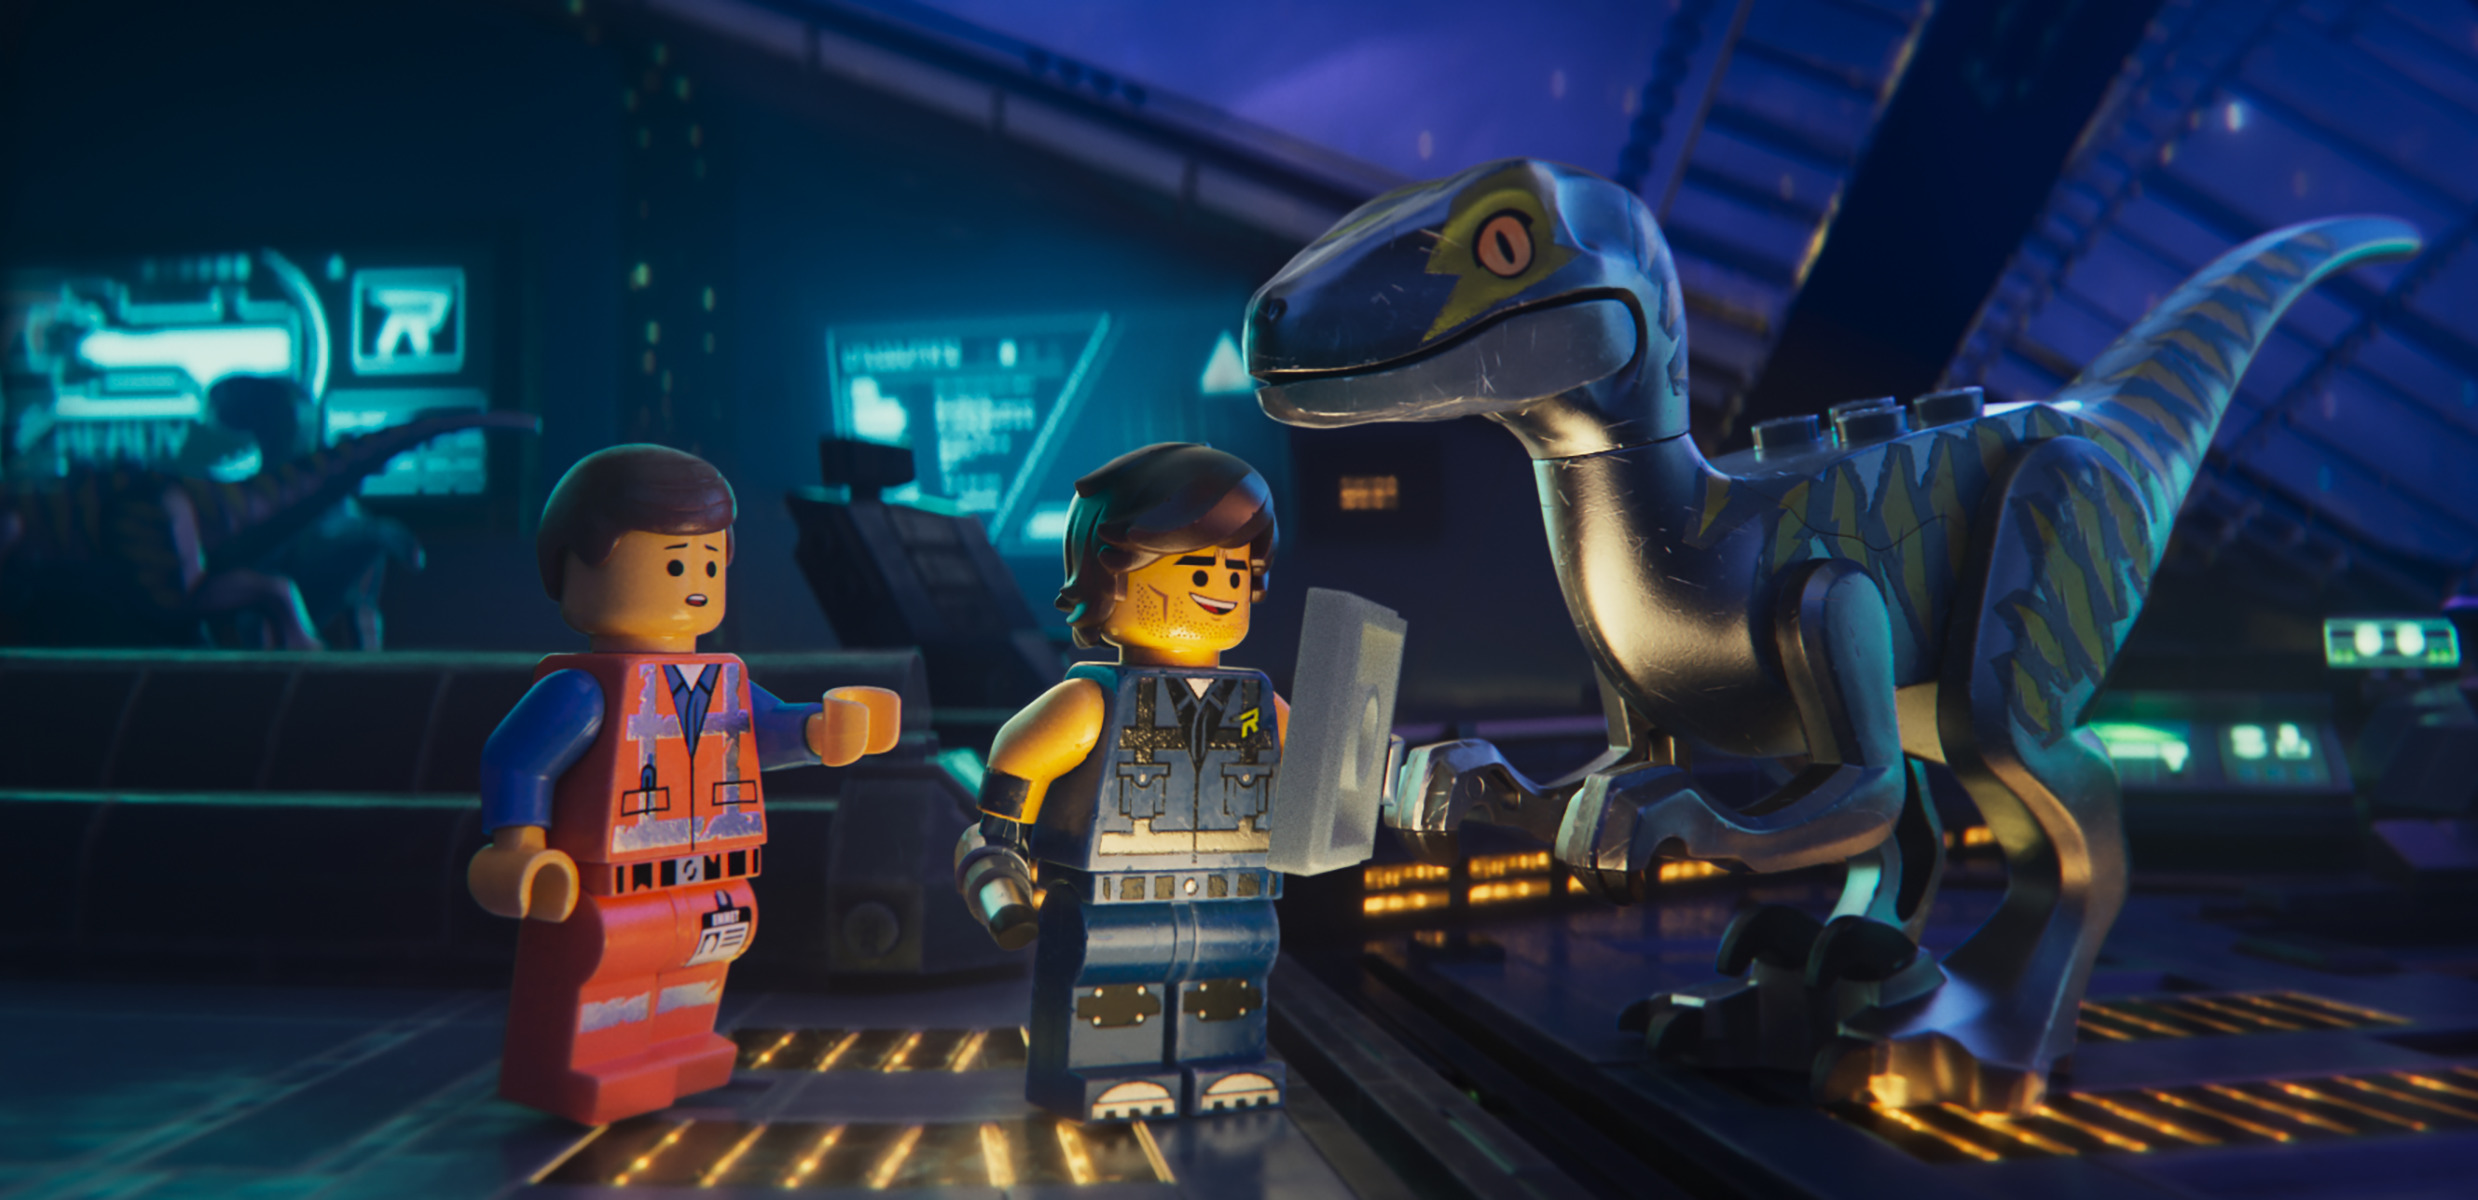 Nightmarish Detour Review: THE LEGO MOVIE 2: THE SECOND PART (2019)